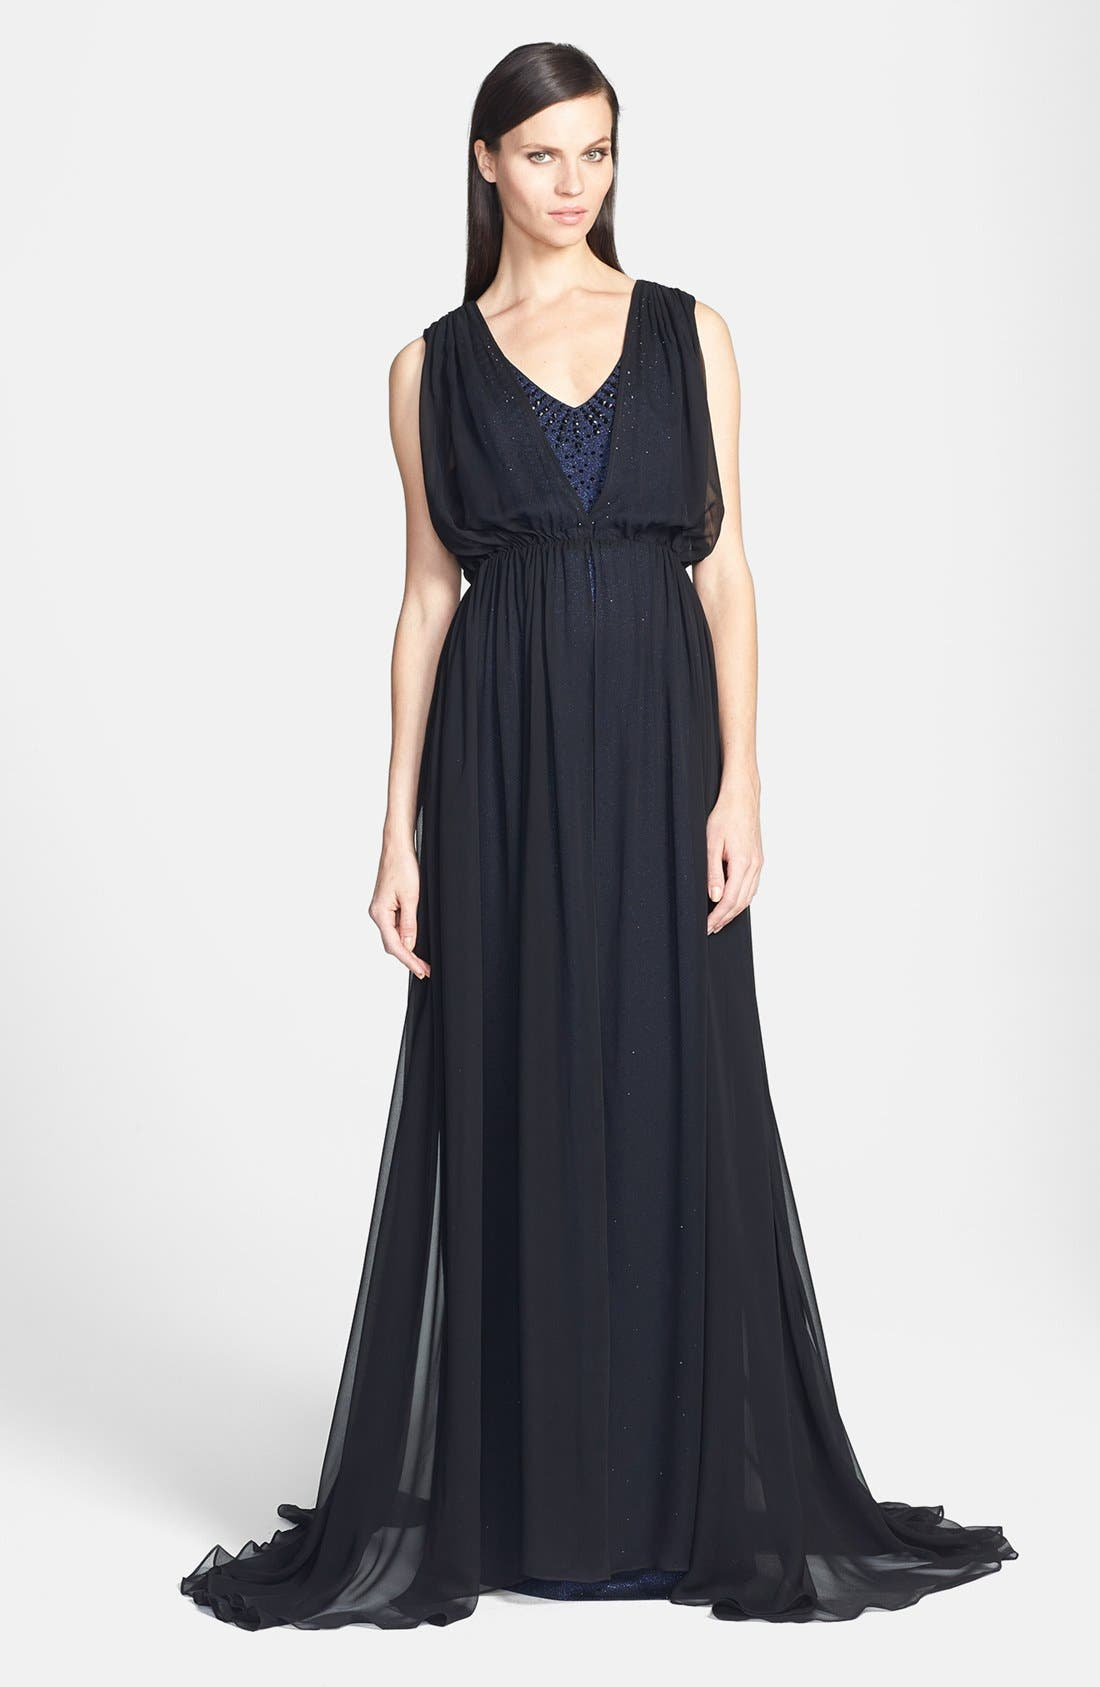 Main Image - St. John Collection Sparkle Milano Knit Gown with Silk Chiffon Overlay